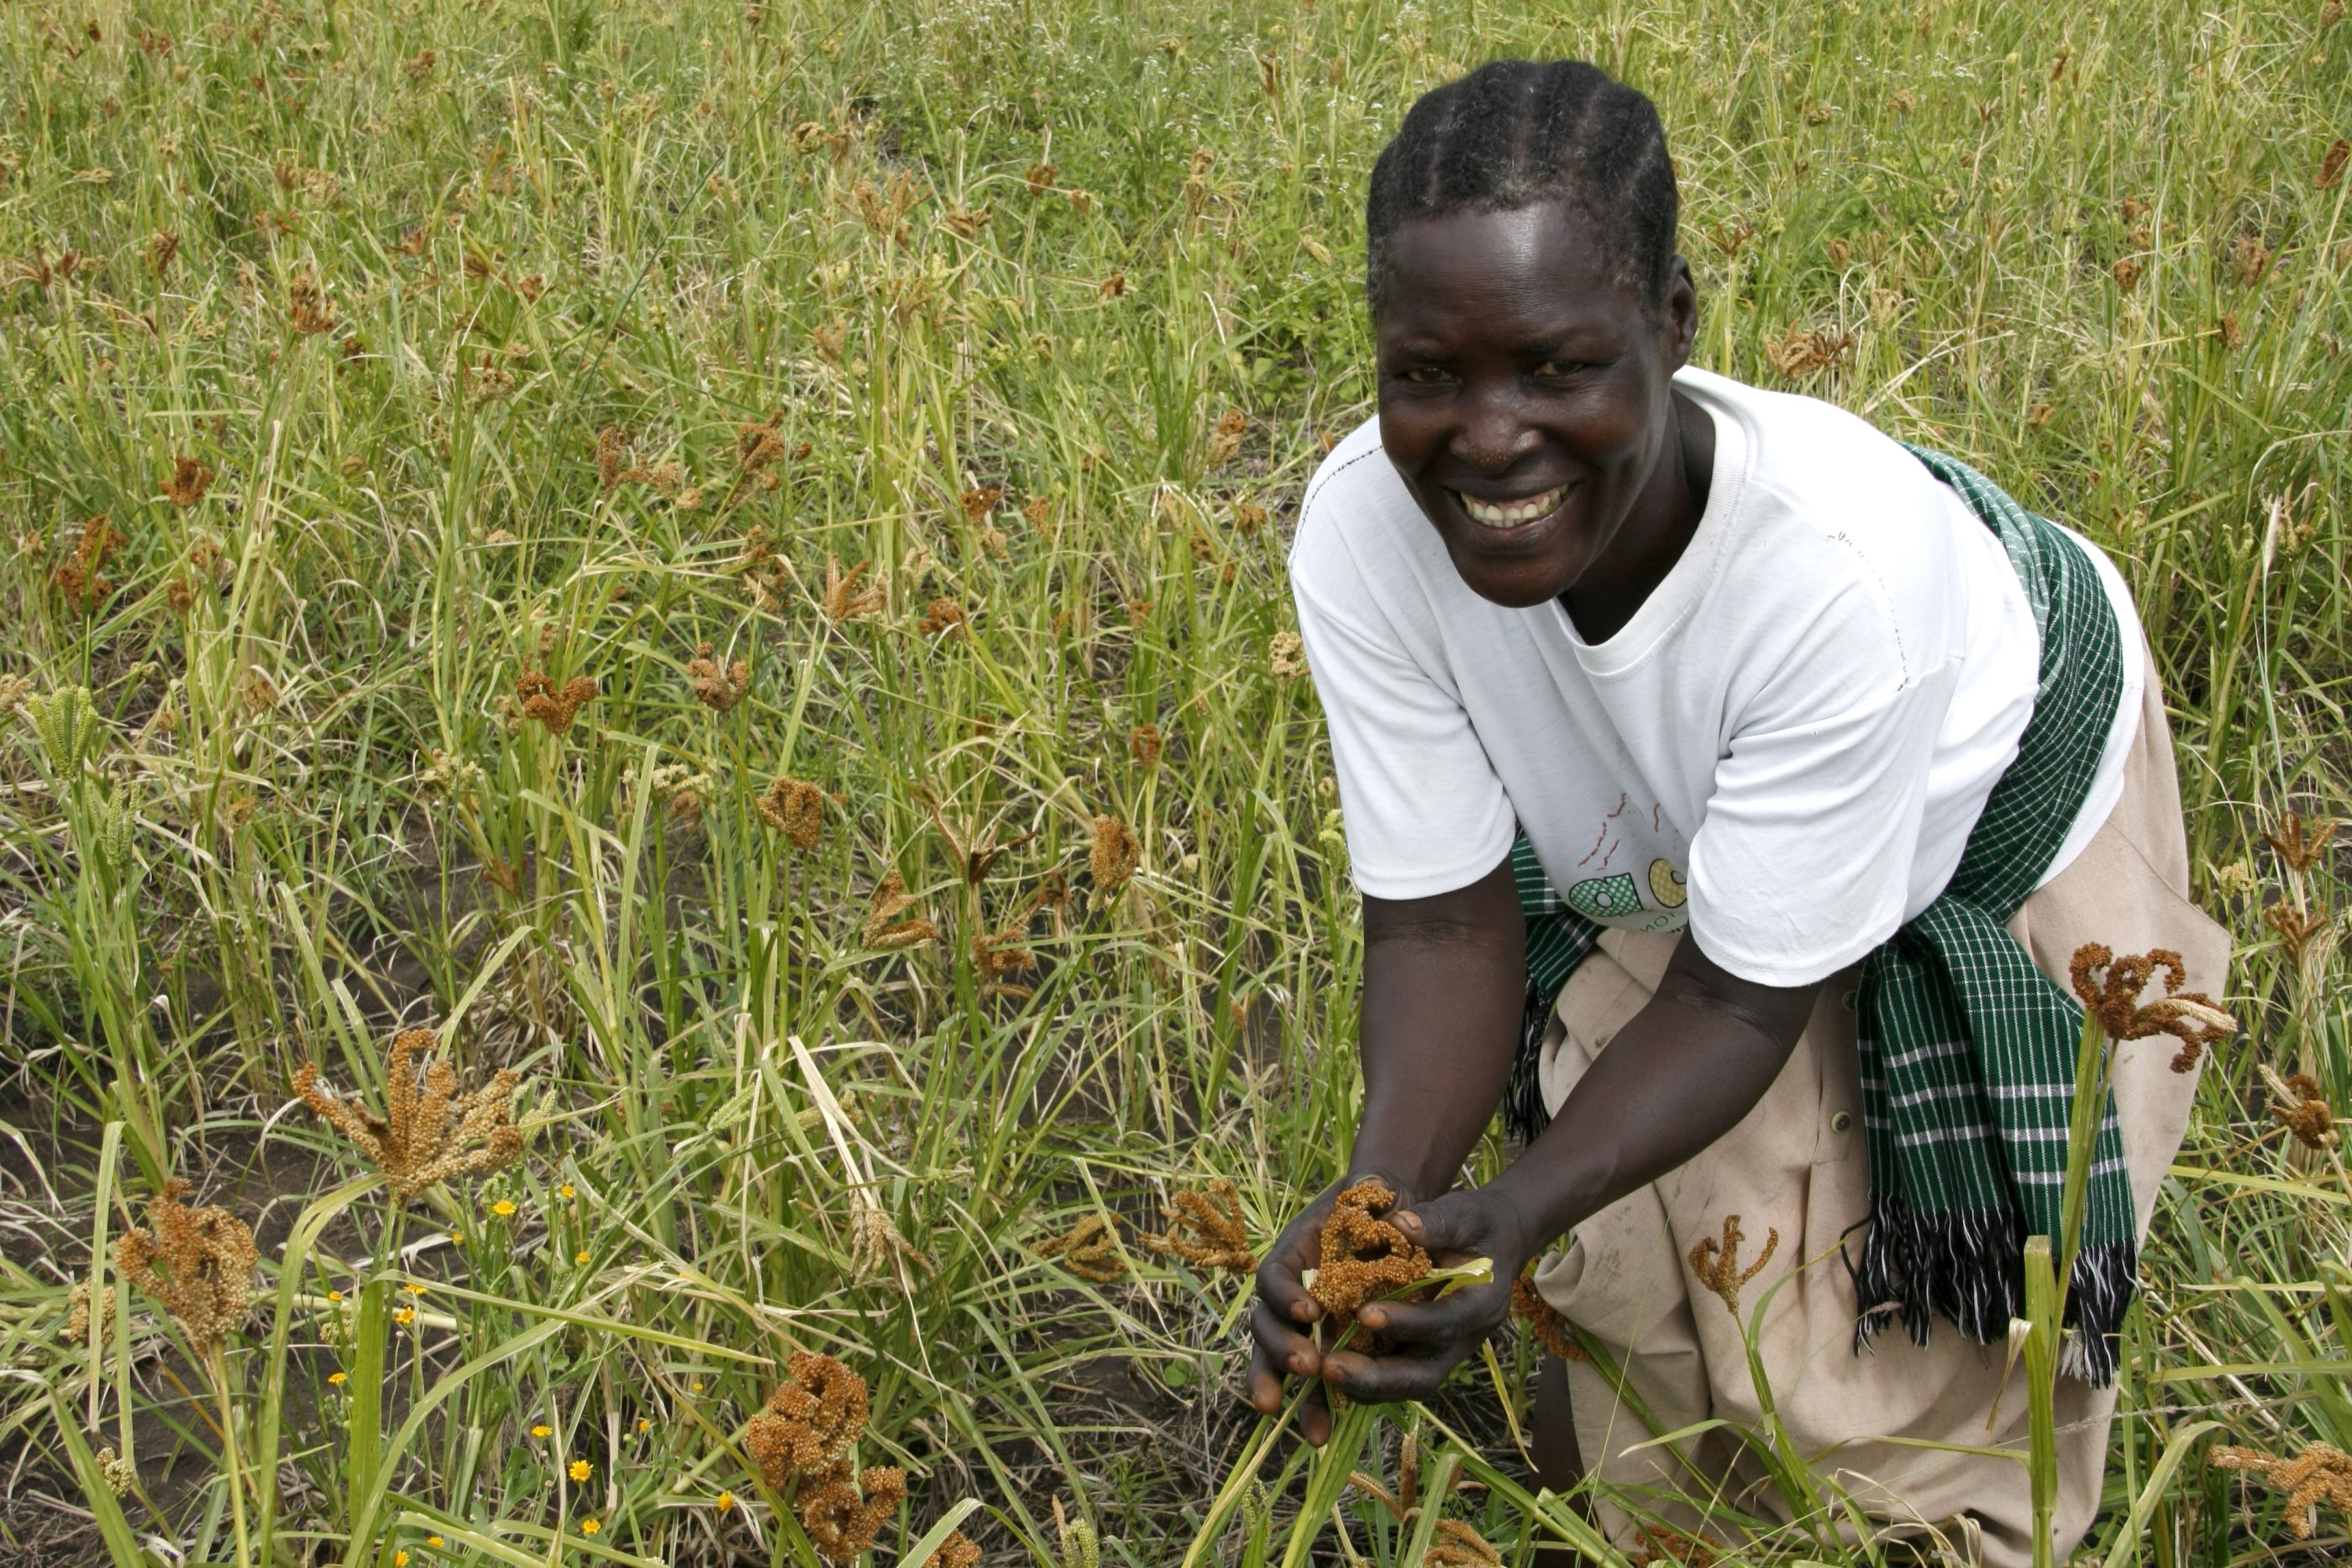 File:Harvesting hope after war in the fields of northern Uganda ...